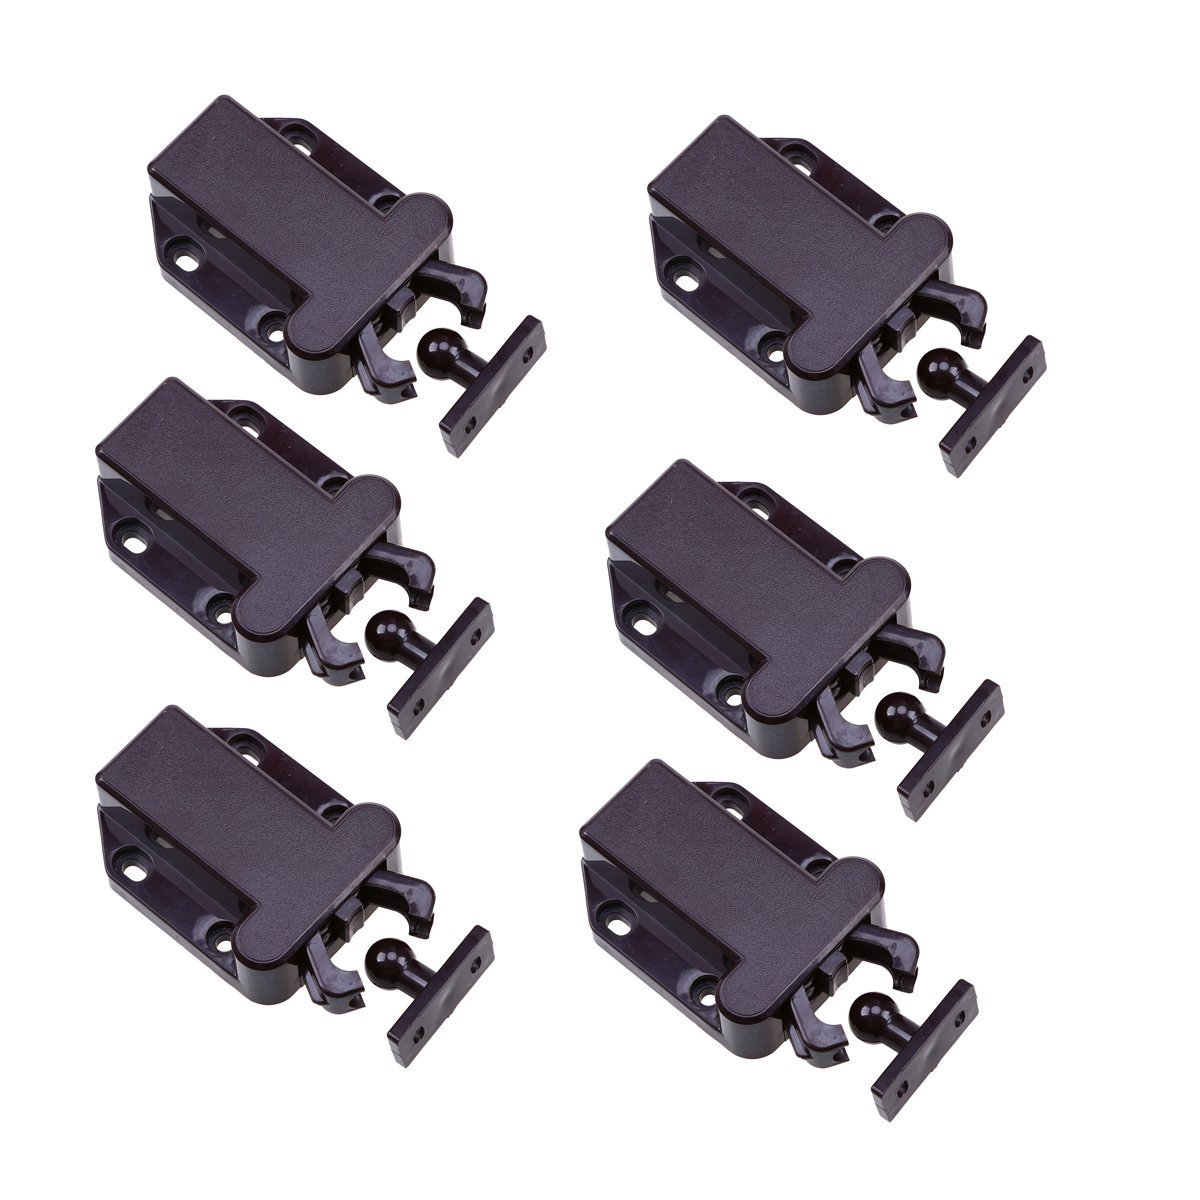 goodchanceuk 6Sets Push to Catch Schloss ö ffnen Schublade Schrank Cabinet Catch Touch Latch Schlafzimmer SZETOSY